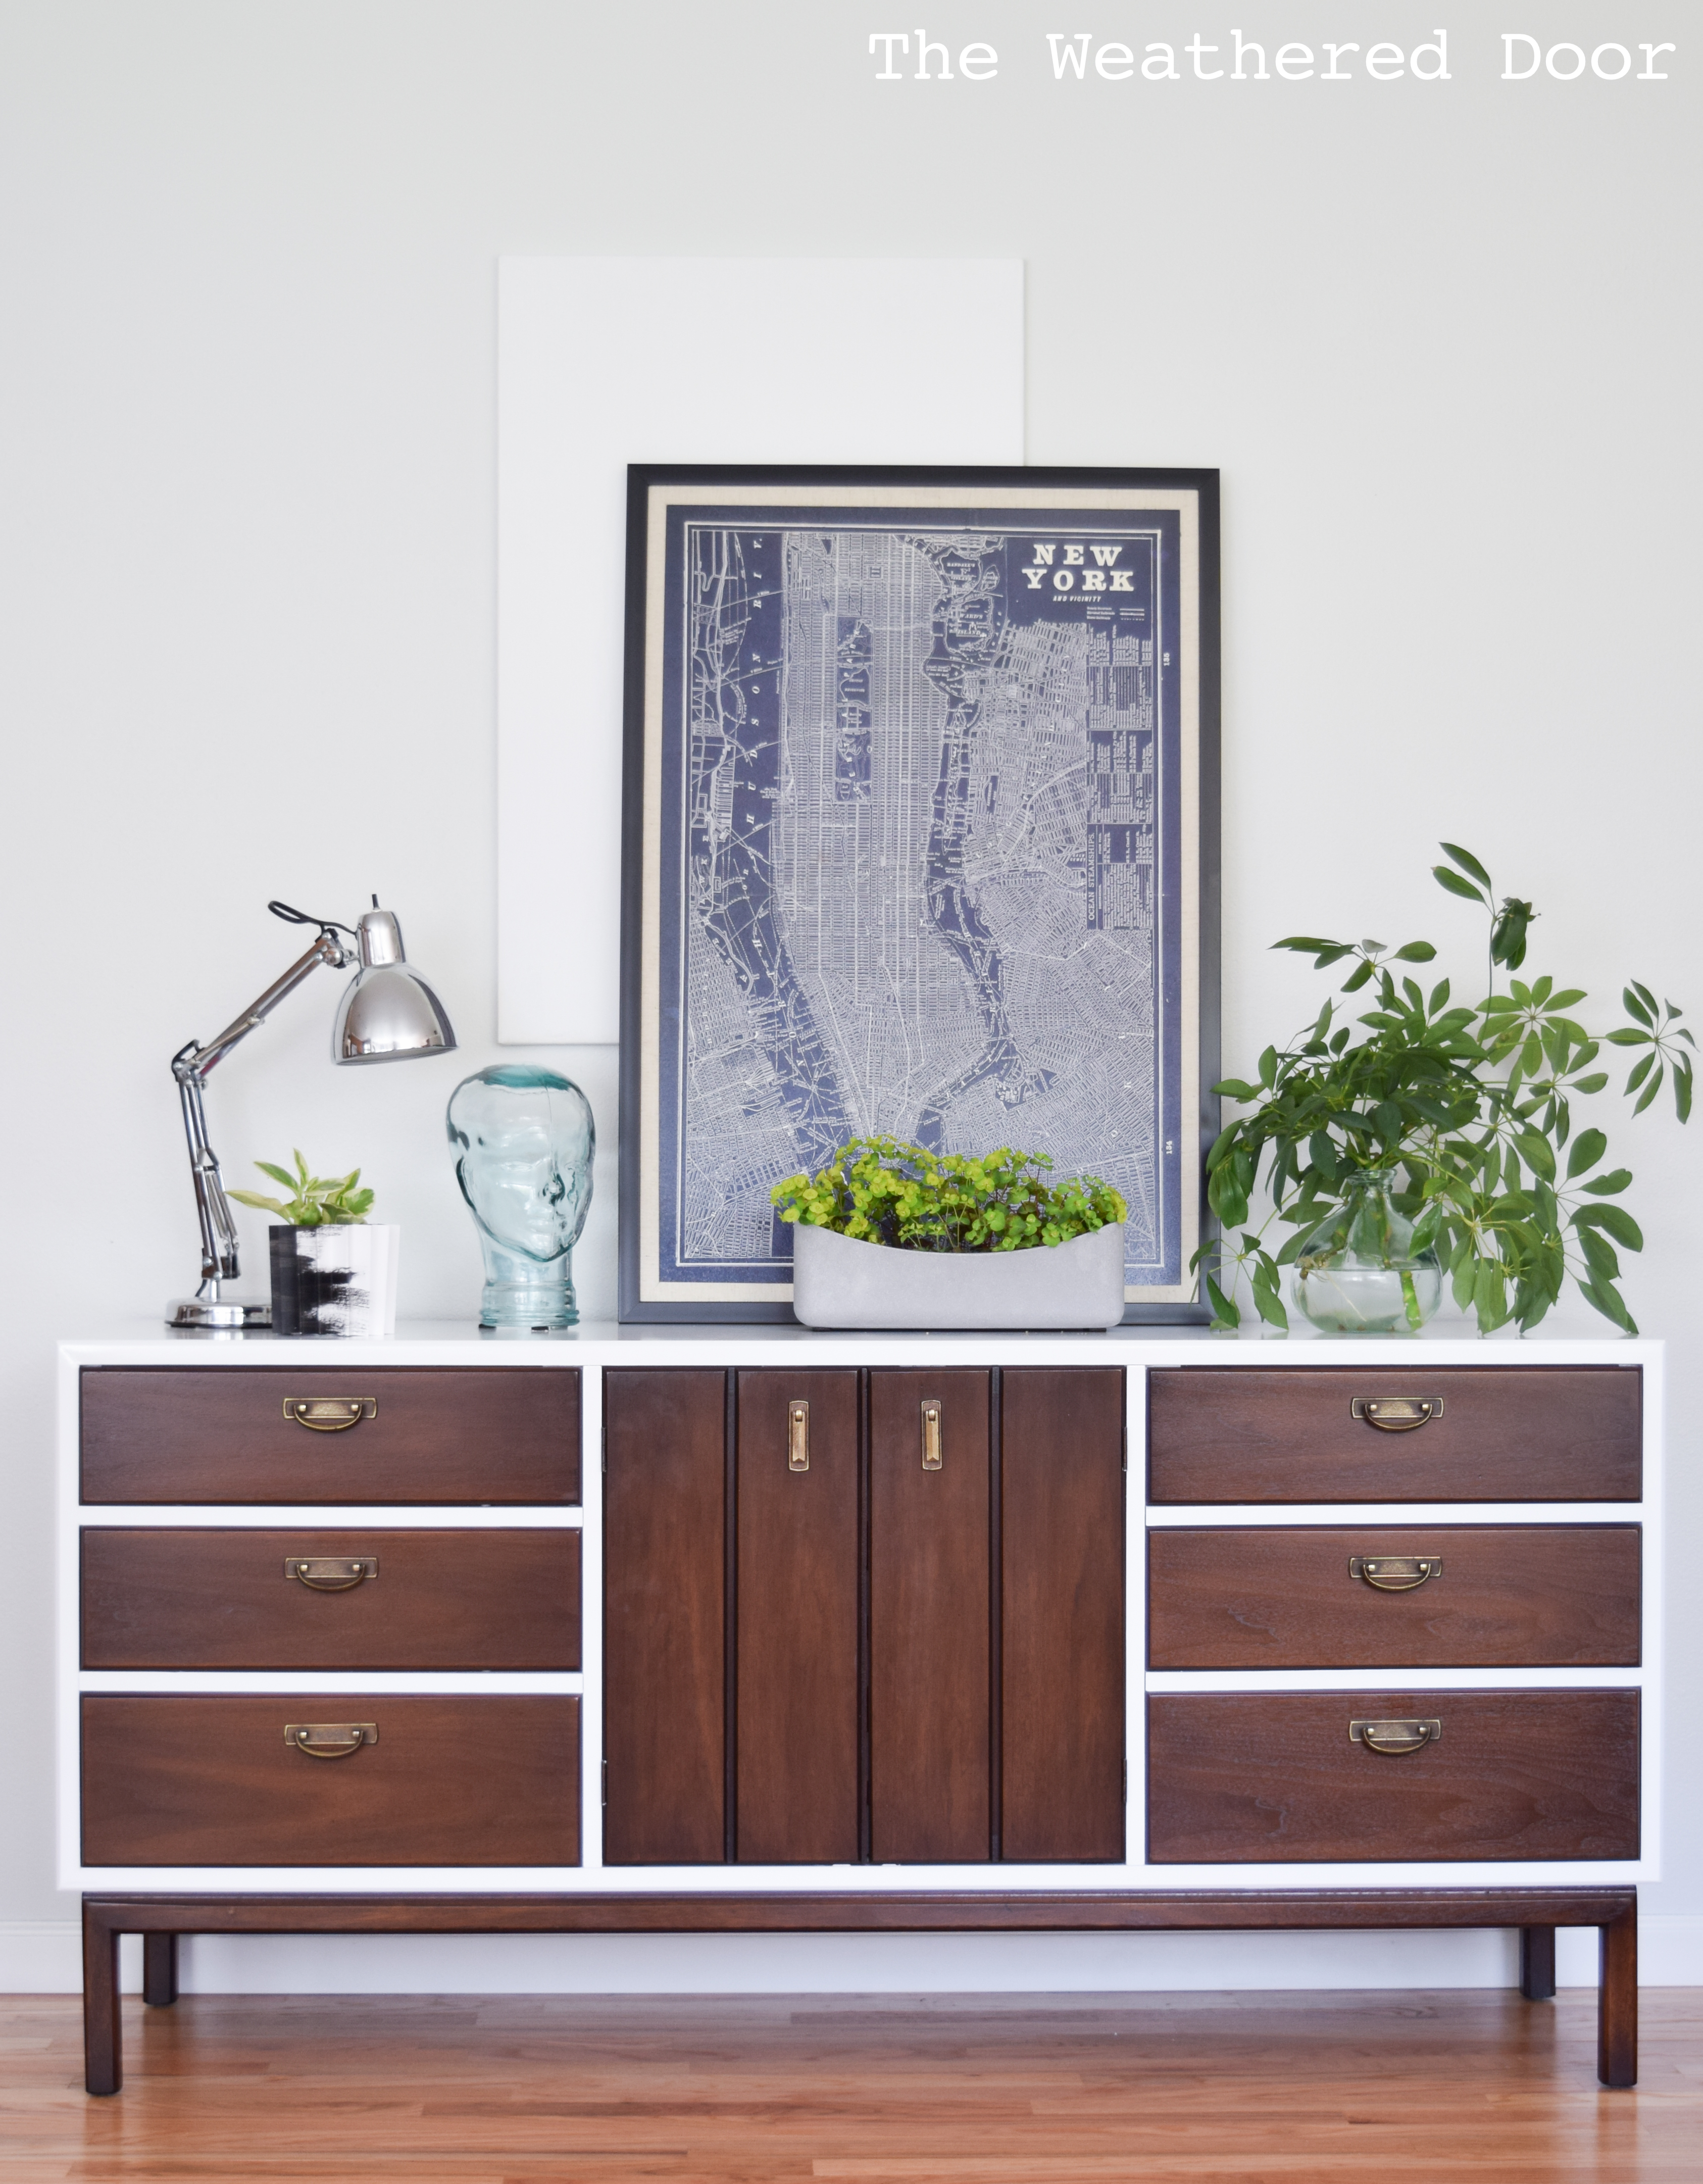 broyhill premier credenza with geometric drawers WD-16